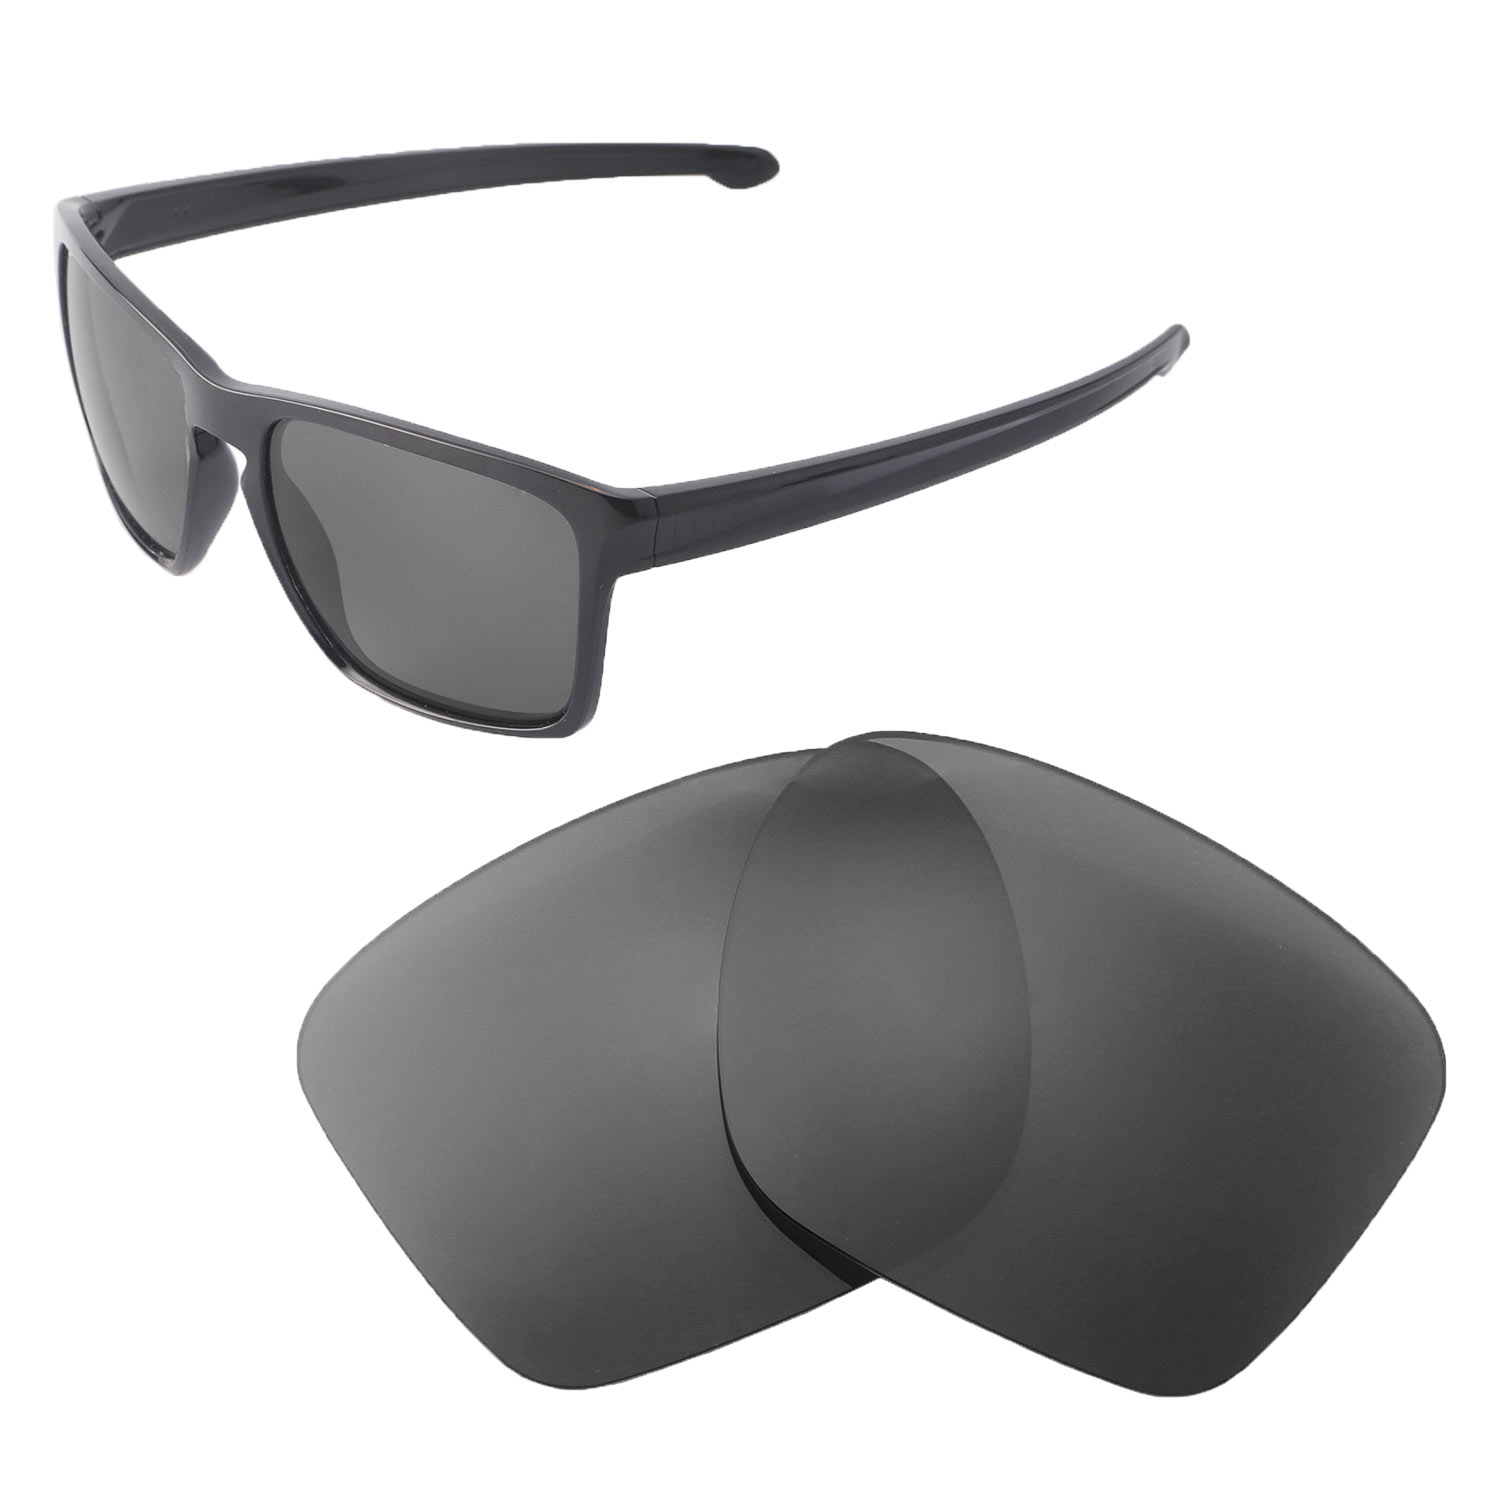 3e2f7484c51 Details about New Walleva Black Polarized Replacement Lenses For Oakley  Sliver XL Sunglasses